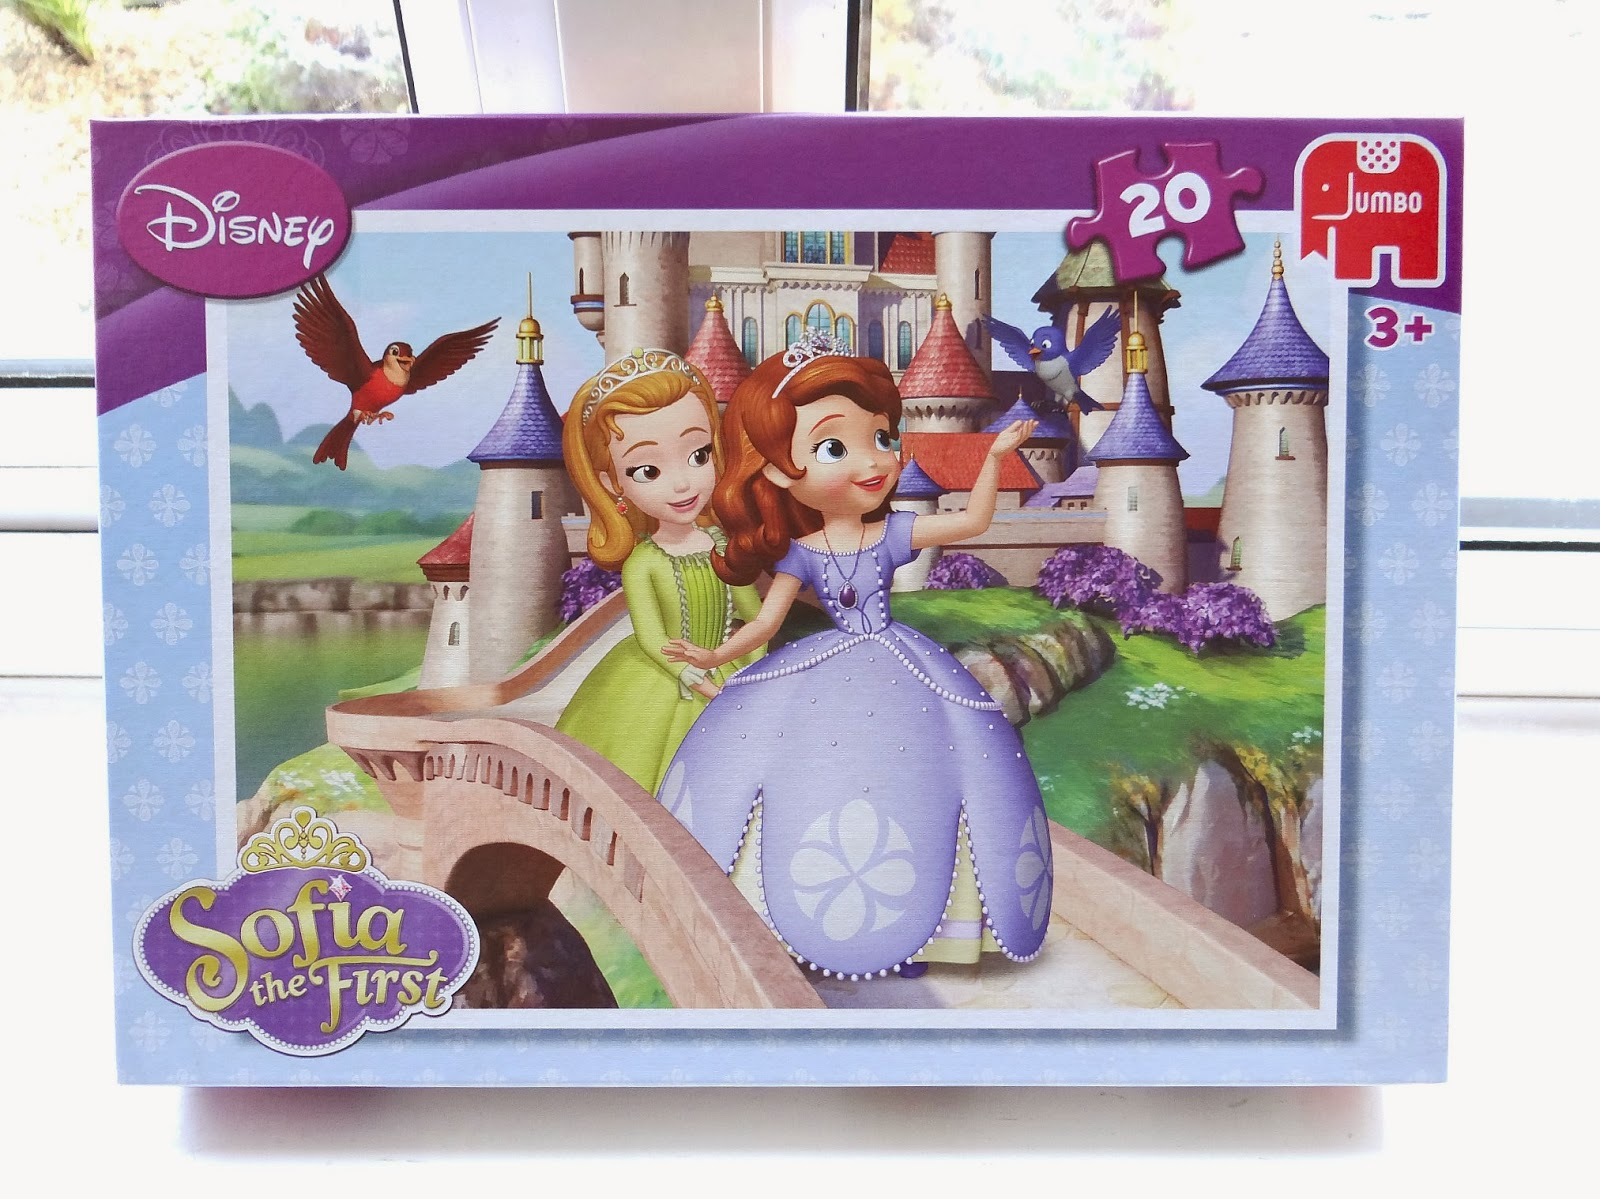 Disney Sofia the First, Jumbo children puzzles, preschool Disney puzzles